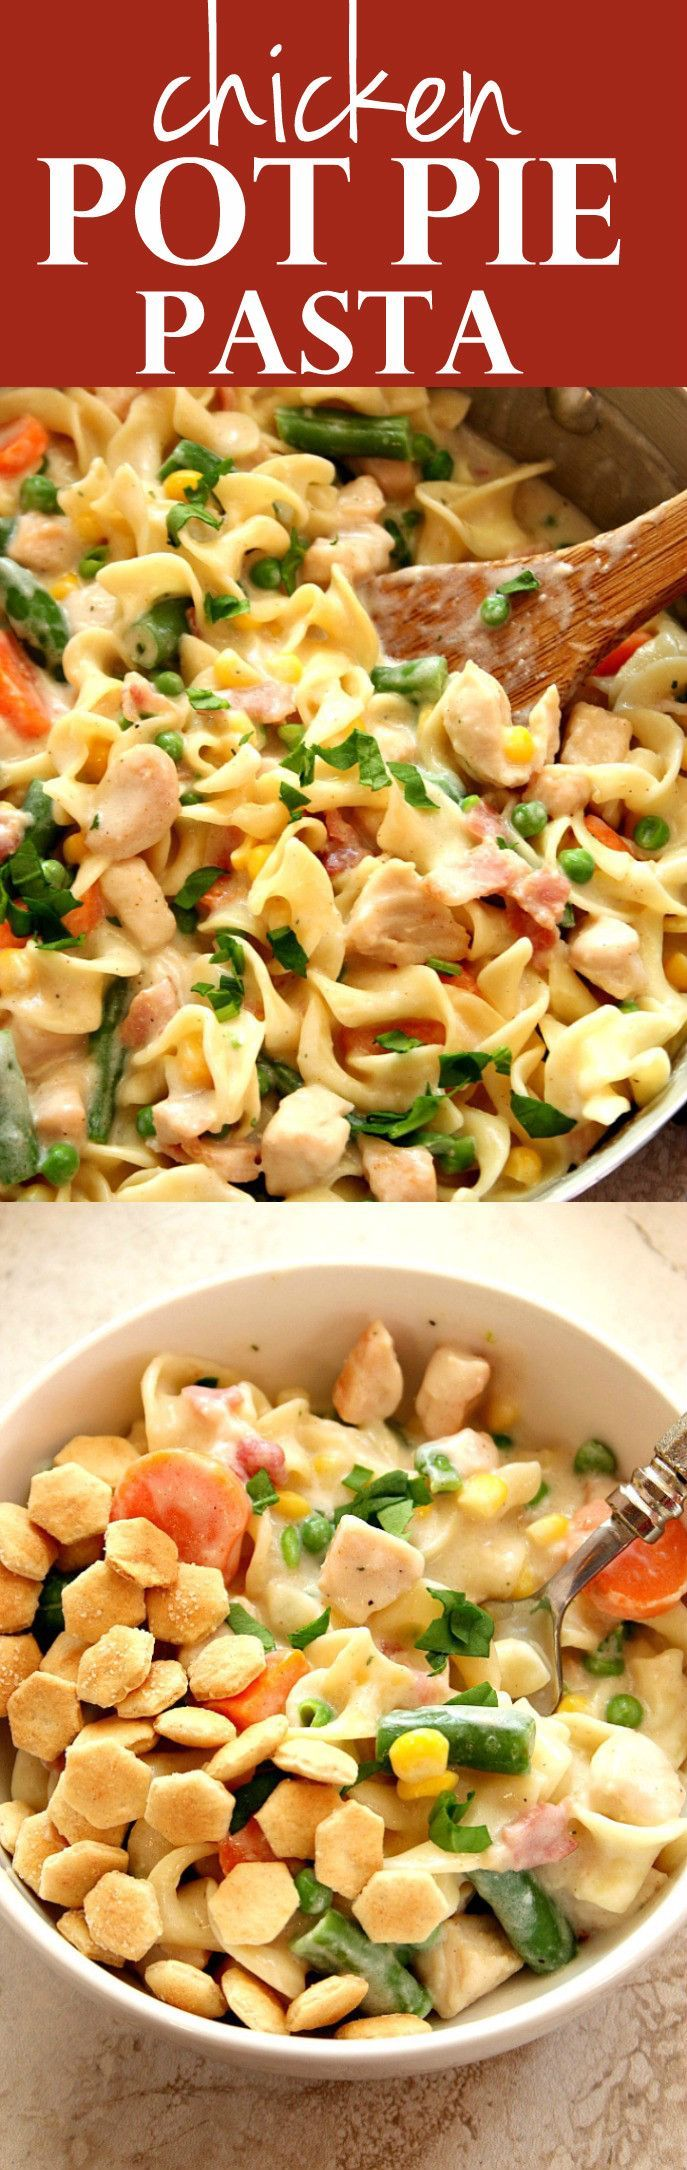 1000+ images about Pasta Heaven on Pinterest | Pasta carbonara, Pasta ...